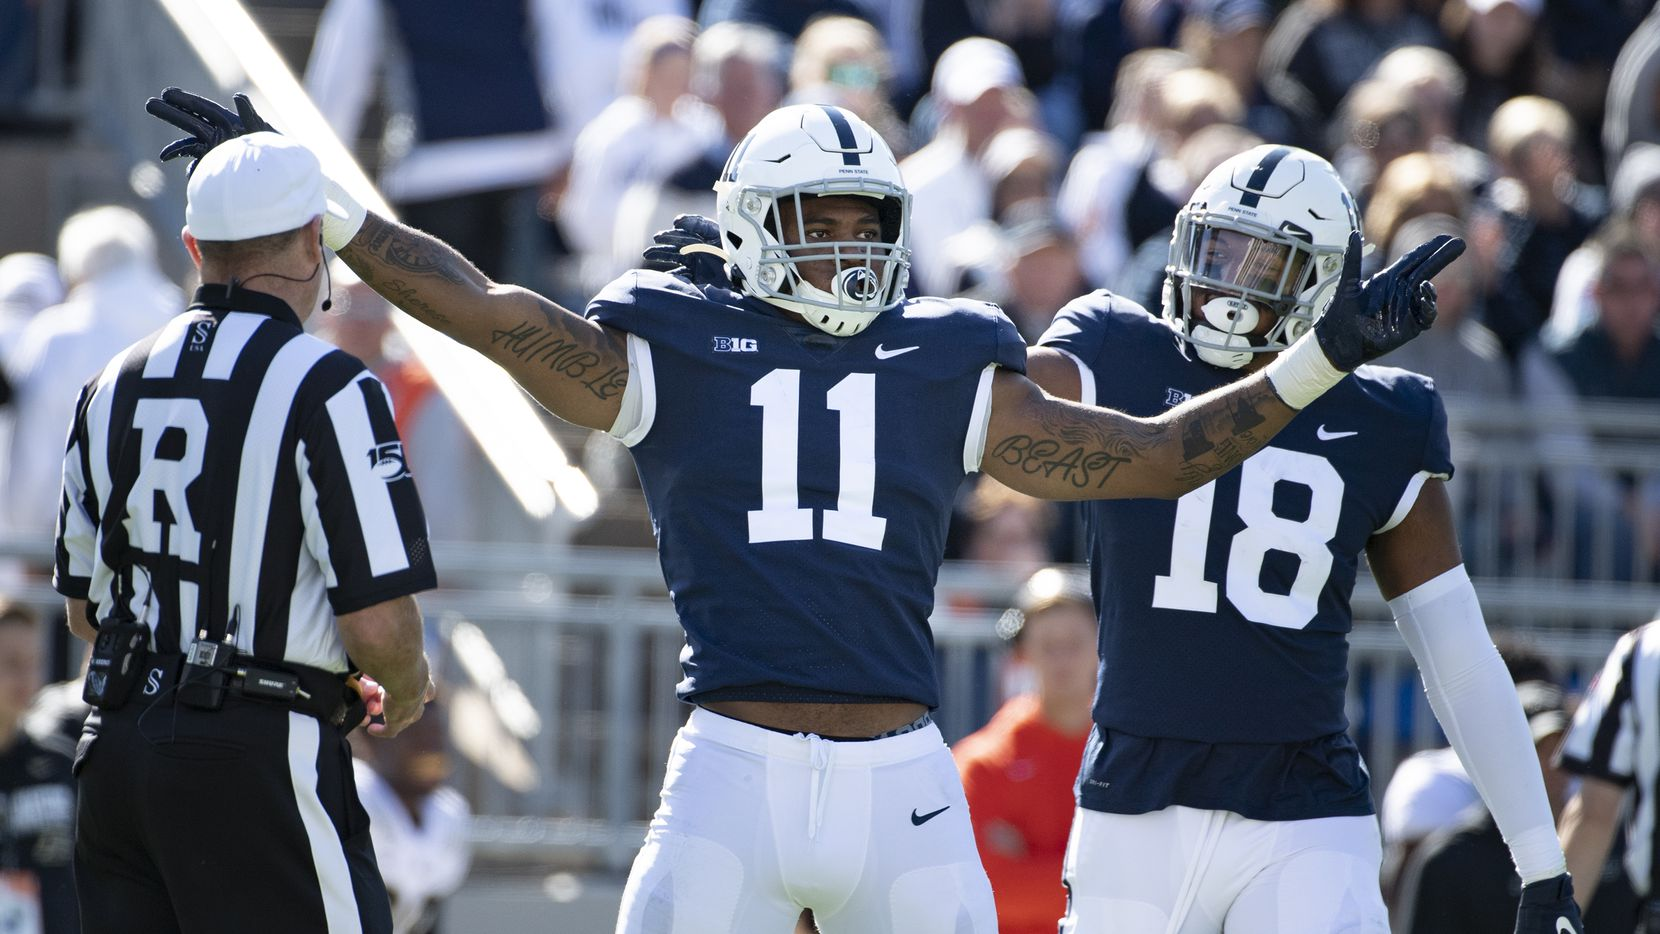 Penn State linebacker Micah Parsons (11) and defensive end Shaka Toney (18) celebrate a sack of Purdue quarterback Jack Plummer (13) in the second half of an NCAA college football game against Purdue in State College, Pa., on Saturday, Oct. 5, 2019. Penn State defeated Purdue 35-7.